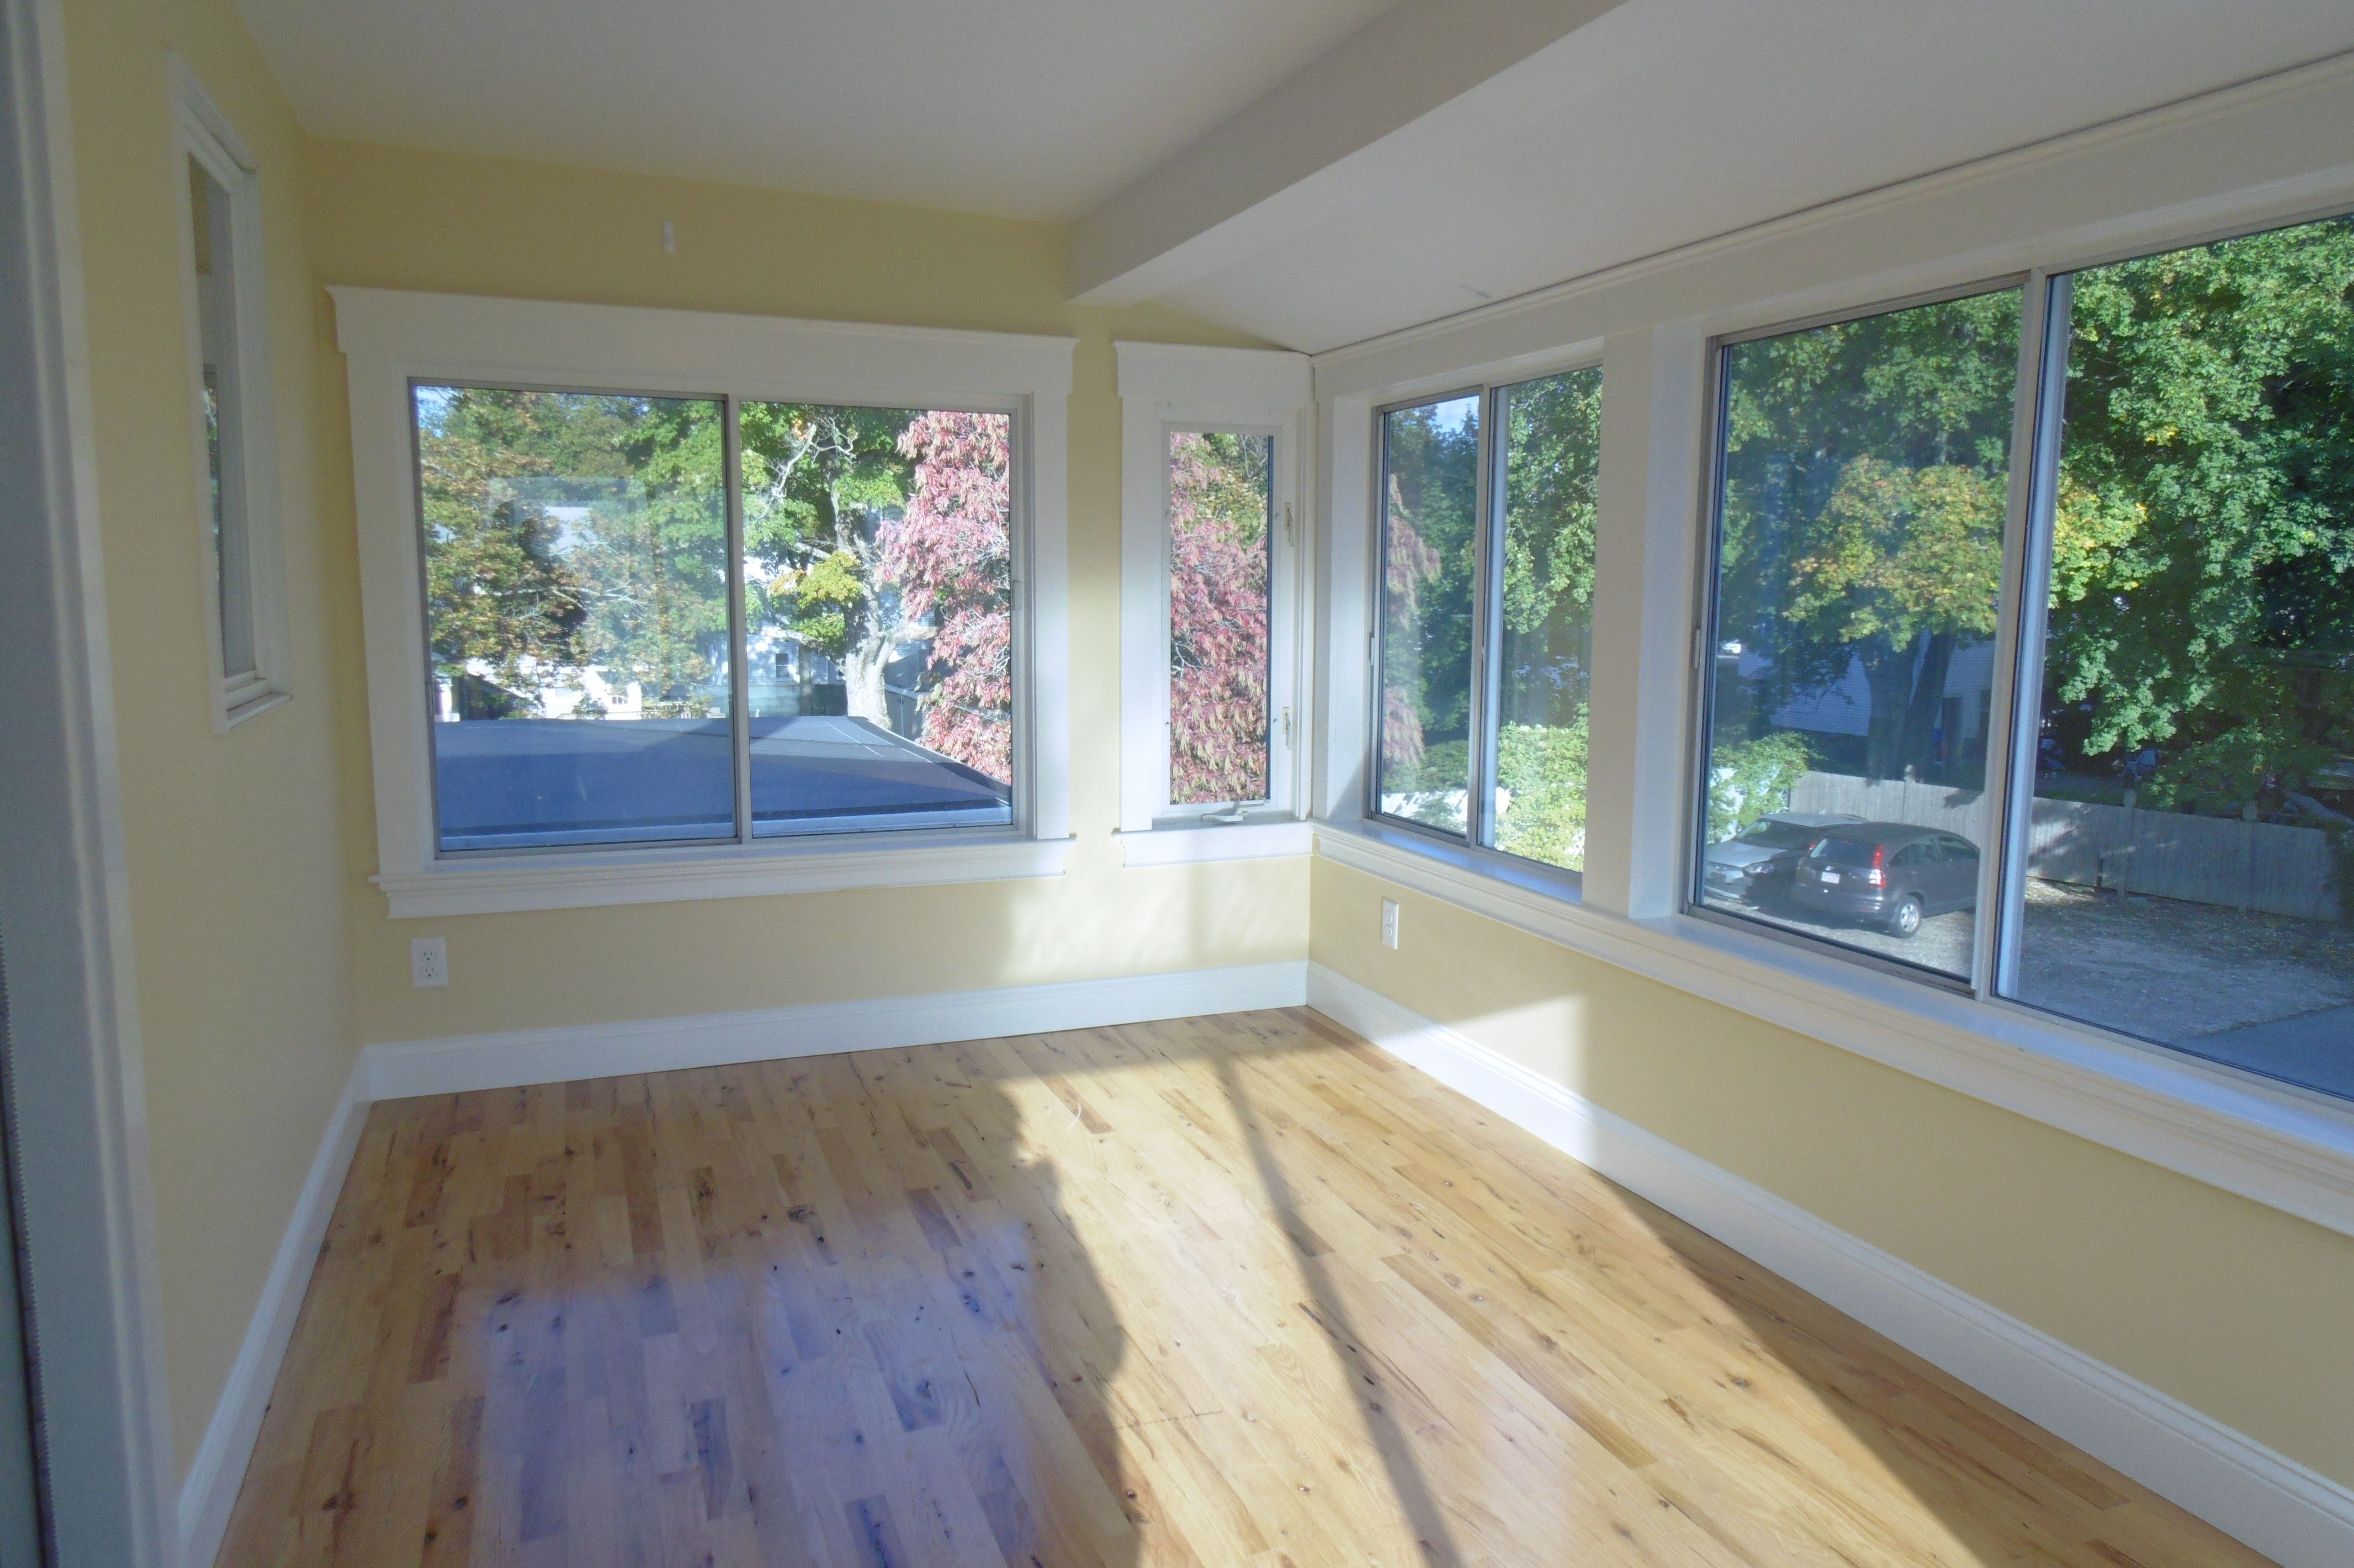 For Rent 2 Bedroom apartment near downtown Middleboro